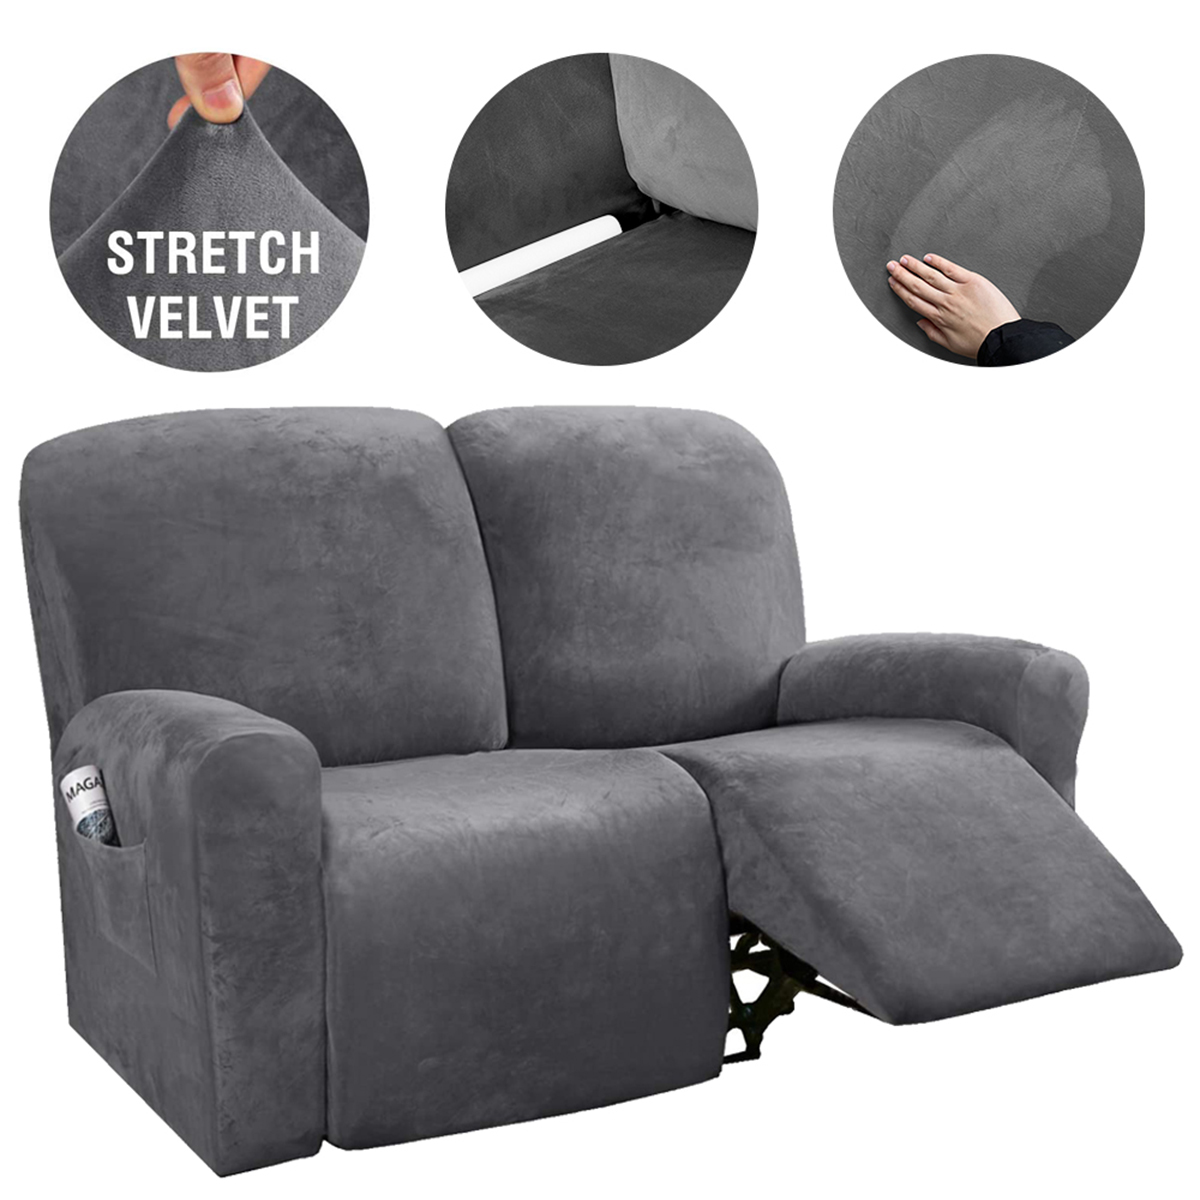 New Stretch Recliner Sofa Slipcover Furniture Chair Couch Cover Velvet Protector